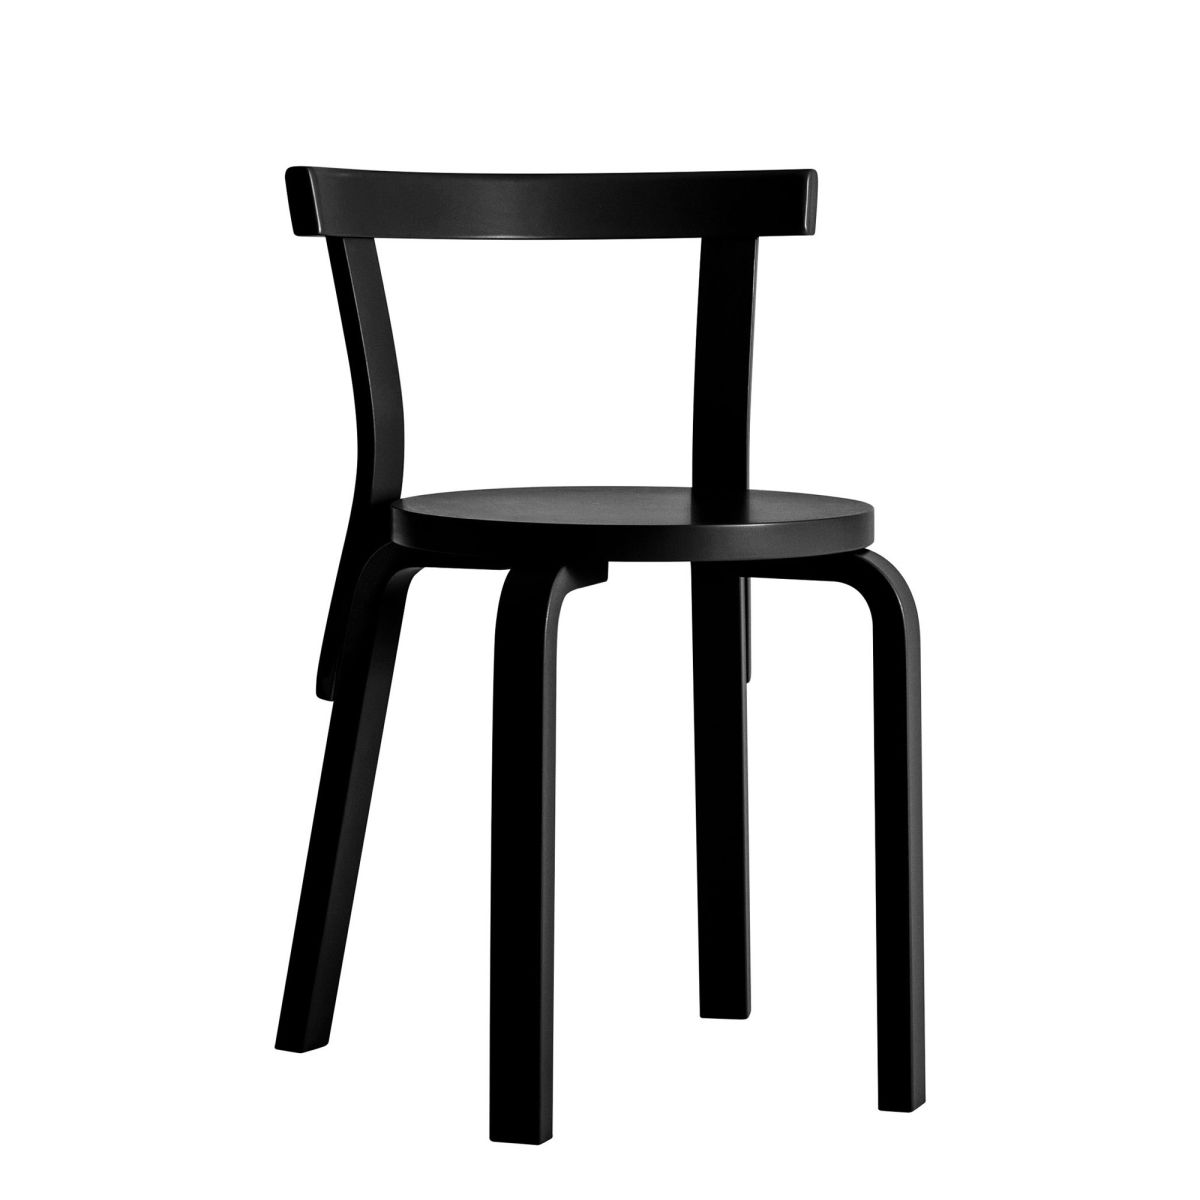 Chair-68-Black-Lacquer_Web-1977267